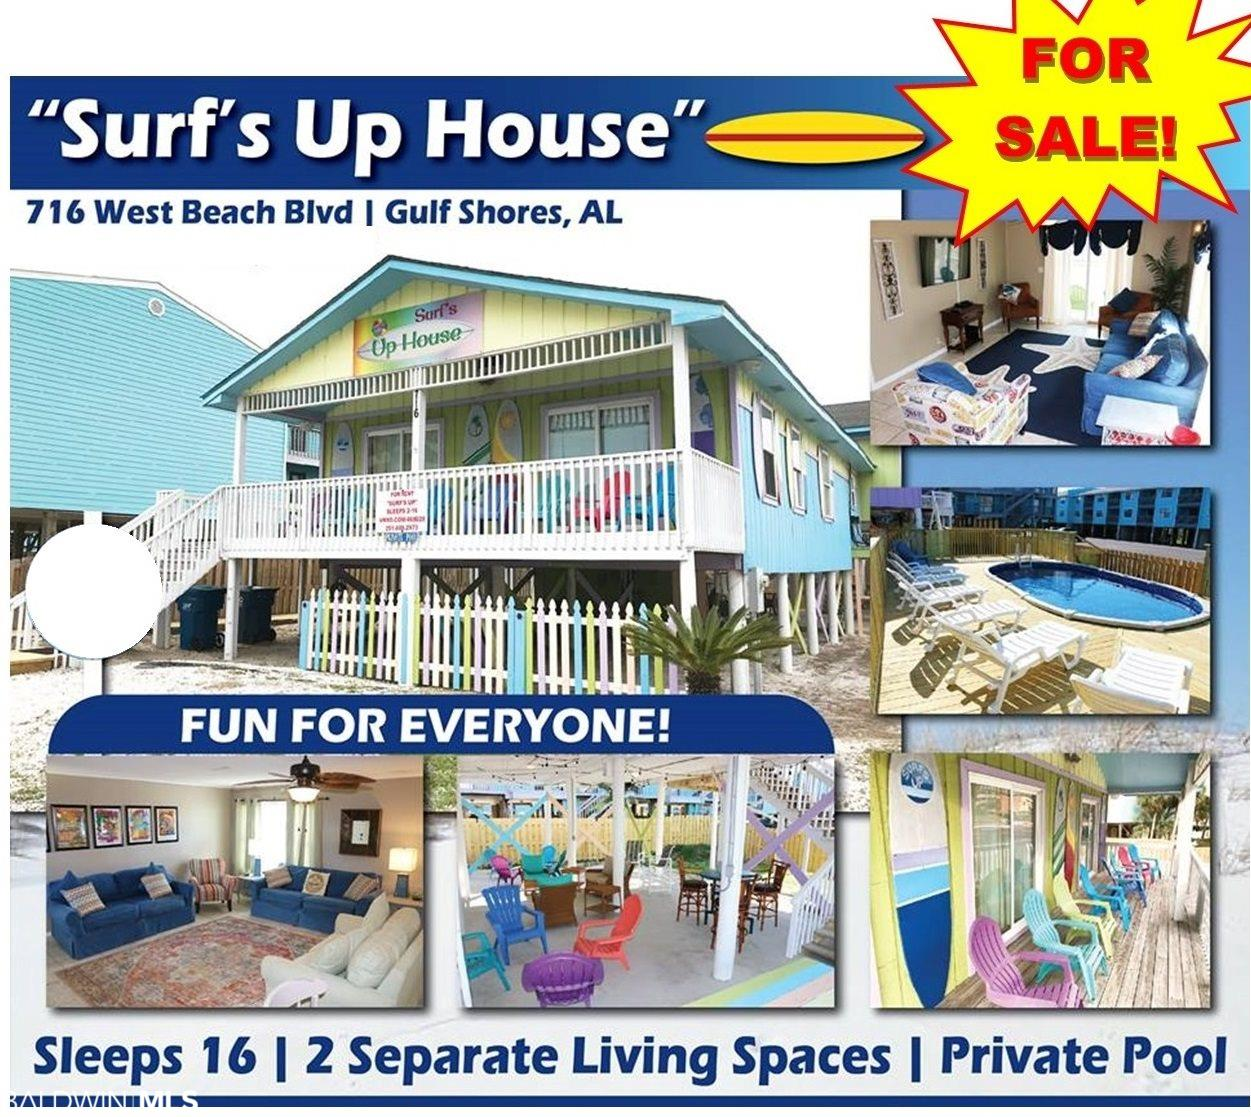 """YOU'VE SEEN IT!  YOU'VE ASKED ABOUT IT!  NOW THE MOST UNIQUE PROPERTY ON WEST BEACH """"THE SURF'S UP HOUSE"""" IS FOR SALE!        TURN KEY, RENT READY MONEY MACHINE!    THIS PROVEN REVENUE PRODUCER HAS DEEDED BEACH ACCESS!  SLEEPS UP TO 16 GUESTS!  STAYS BOOKED!   ******        Private swimming pool for SURF'S UP guests only plus parking for 15+cars. Plenty of room for boats, jet skis, and RV's.  No HOA fees!        This turnkey property sits on a giant 100' X 120' (double) lot and has everything a vacation group or family would want.  2 separate living areas, lives like a duplex----3 bedroom/ 2 bath main house with sleeper sleeps 8.  PLUS One bedroom/1 bath separate (but attached) apartment has a double queen bedroom and 2 queen sleepers (sleeps 8).  2 separate full kitchens, 2 dens. Ceramic floors throughout. Granite countertops and custom backsplash in both units. New furnishings in 2020. Over $100,000 in upgrades! ******  The outdoor living area is amazing- complete with hammocks, outdoor television, bluetooth speakers, bistro lighting, basketball goal, charcoal grill, cornhole, dart board---solid rental history for years!        Nearly $100,000 in rentals in 2020.  Over $70,000 on the books for 2021!       5 star rating on VRBO, Premier Partner. More than 90 great reviews.              EXTRA BONUS-----This property is zoned Business/Tourism so you can even convert to restaurant or retail.               MUST SEE!"""